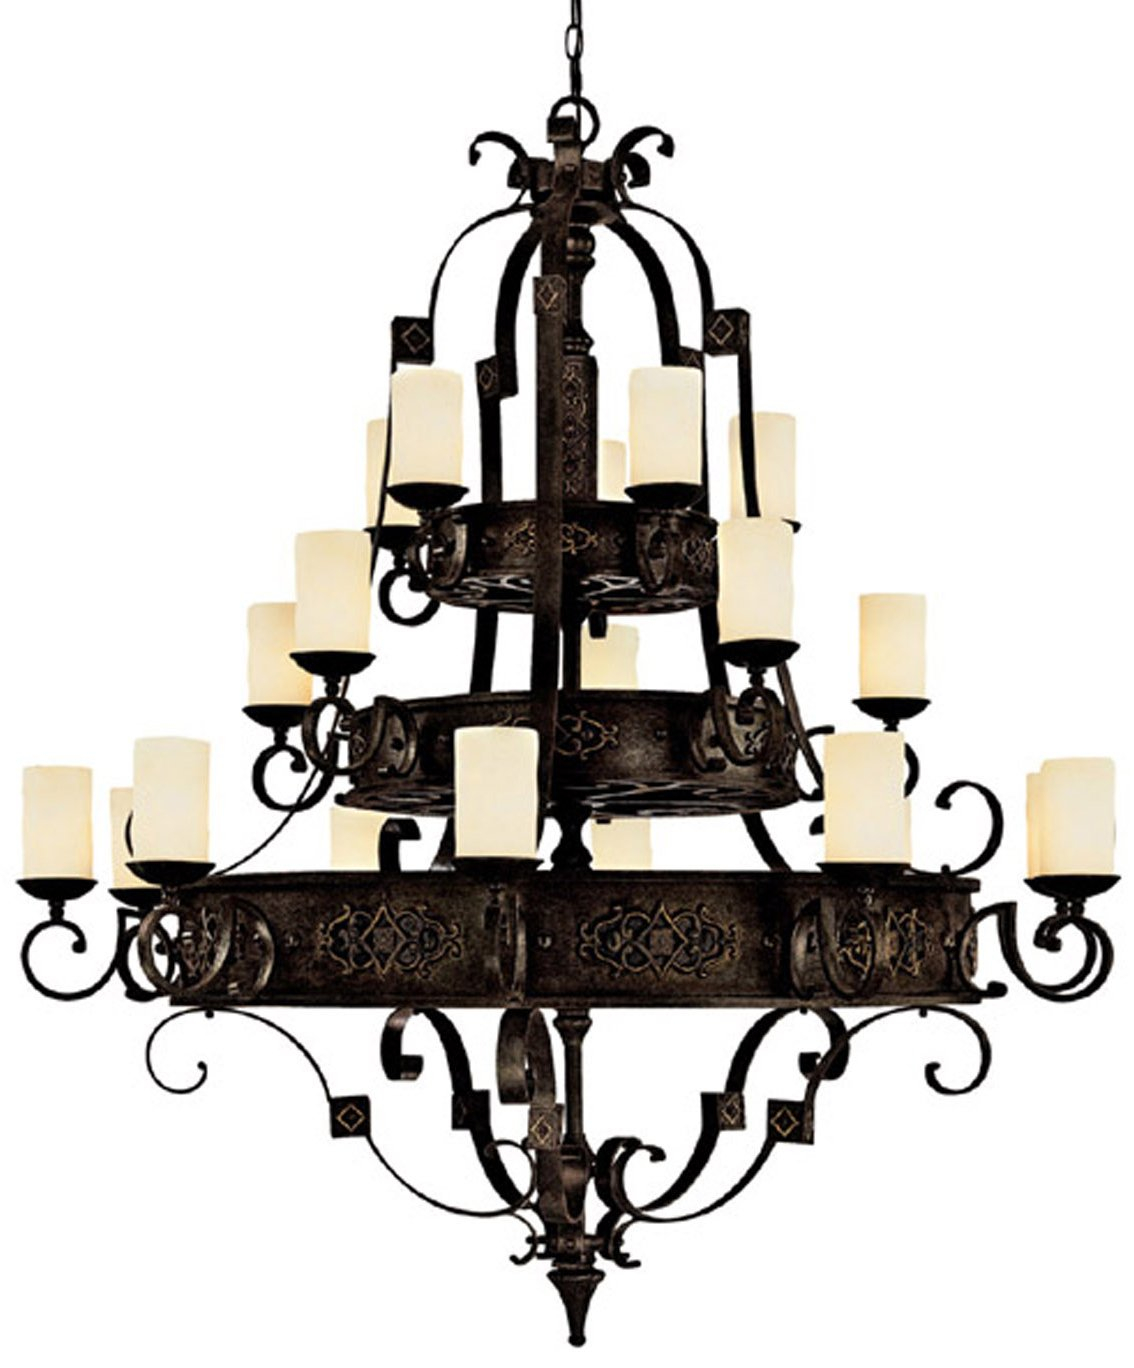 Capital lighting 3600ri 125 river crest traditional 20 light chandelier cp 3600 ri 125